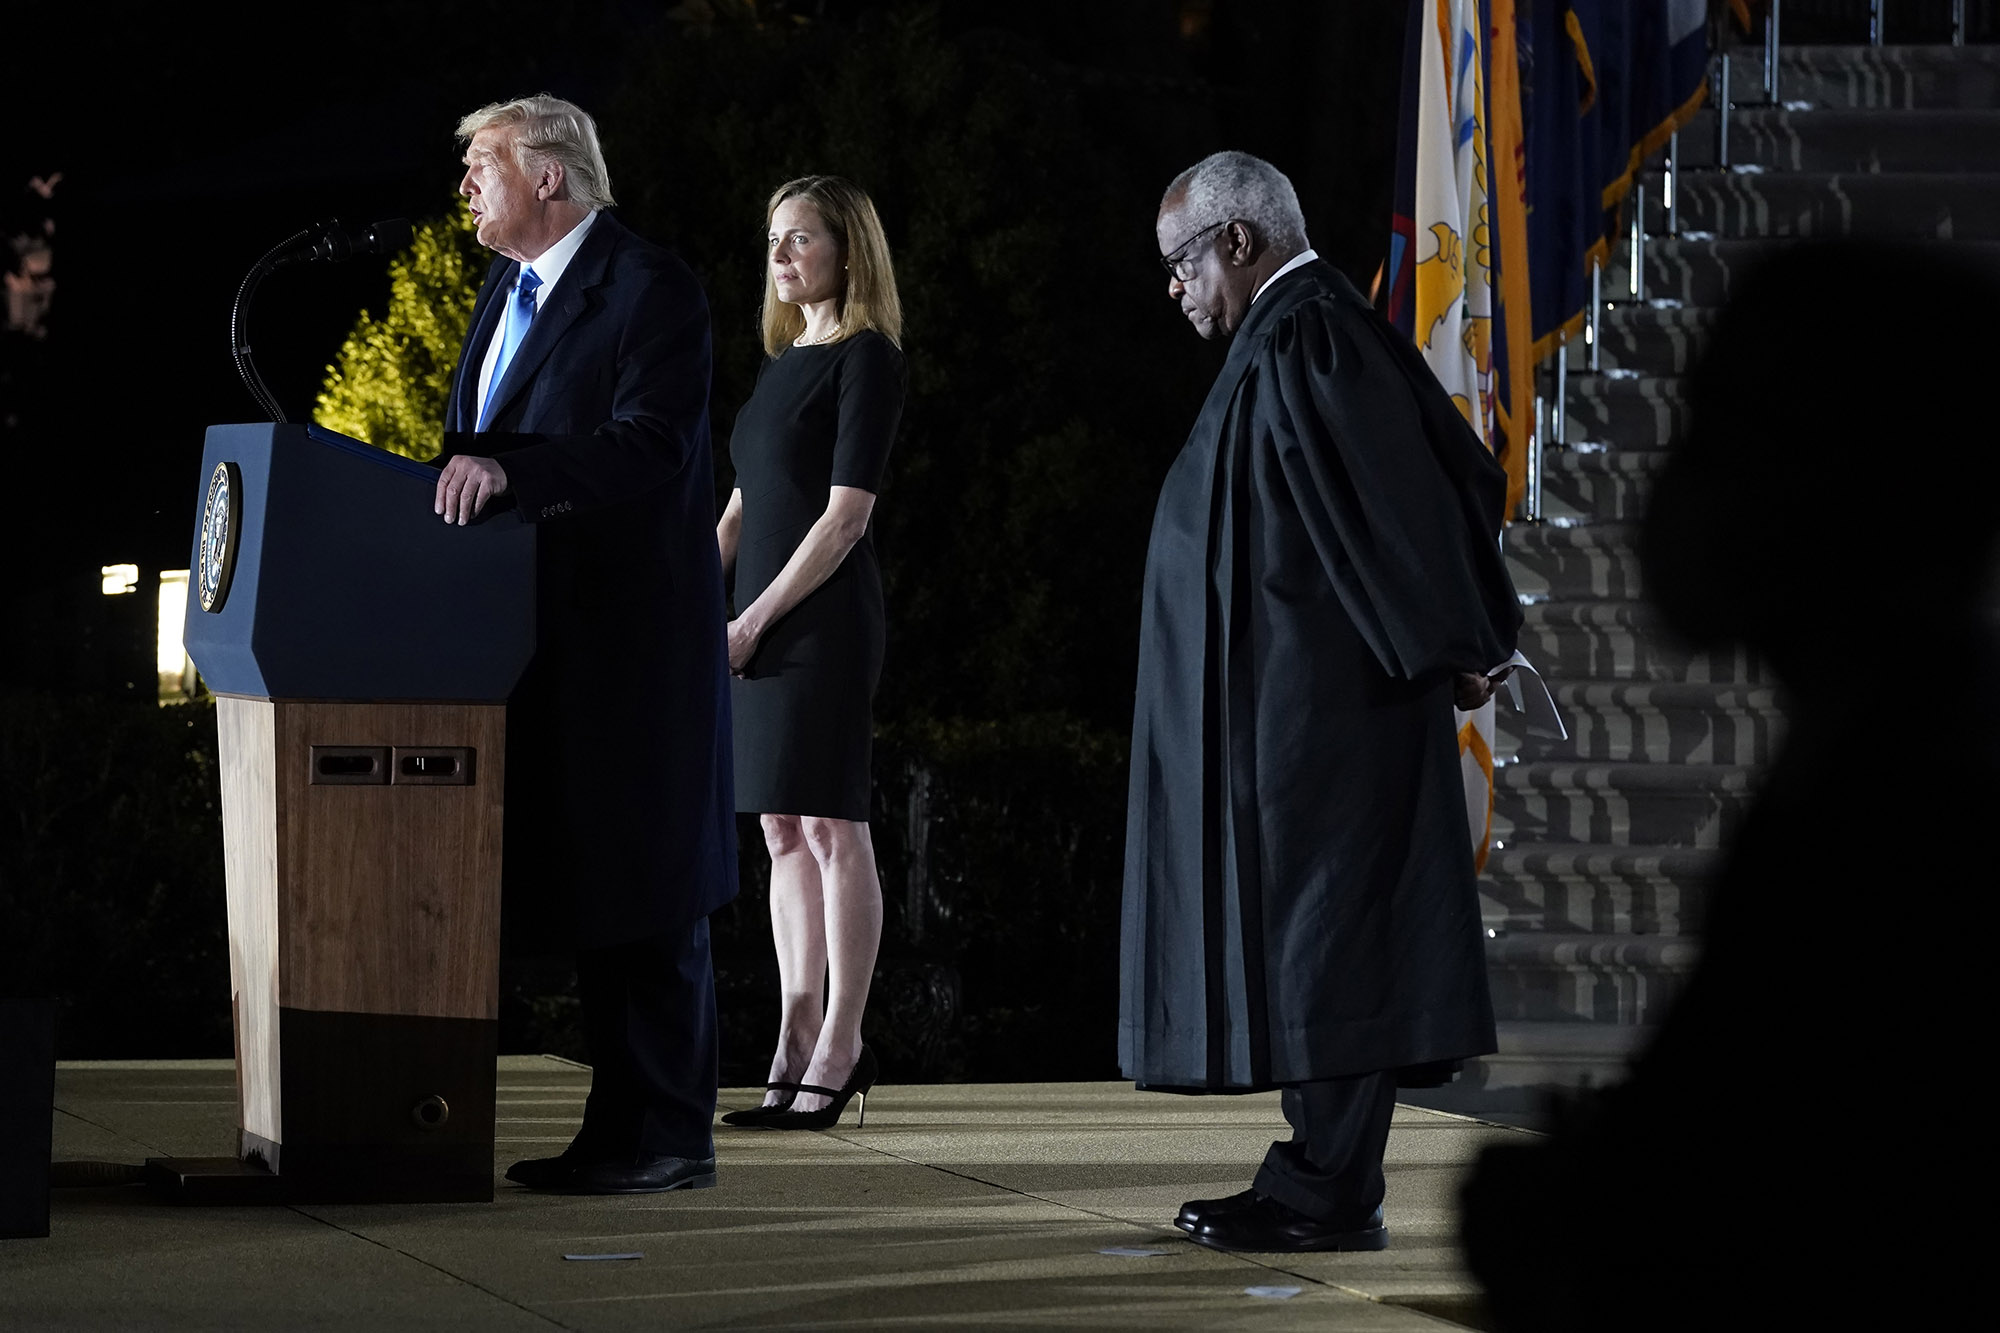 President Donald Trump speaks as Amy Coney Barrett looks on, before Supreme Court Justice Clarence Thomas, right, administers the Constitutional Oath to her on the South Lawn of the White House in Washington on Monday.